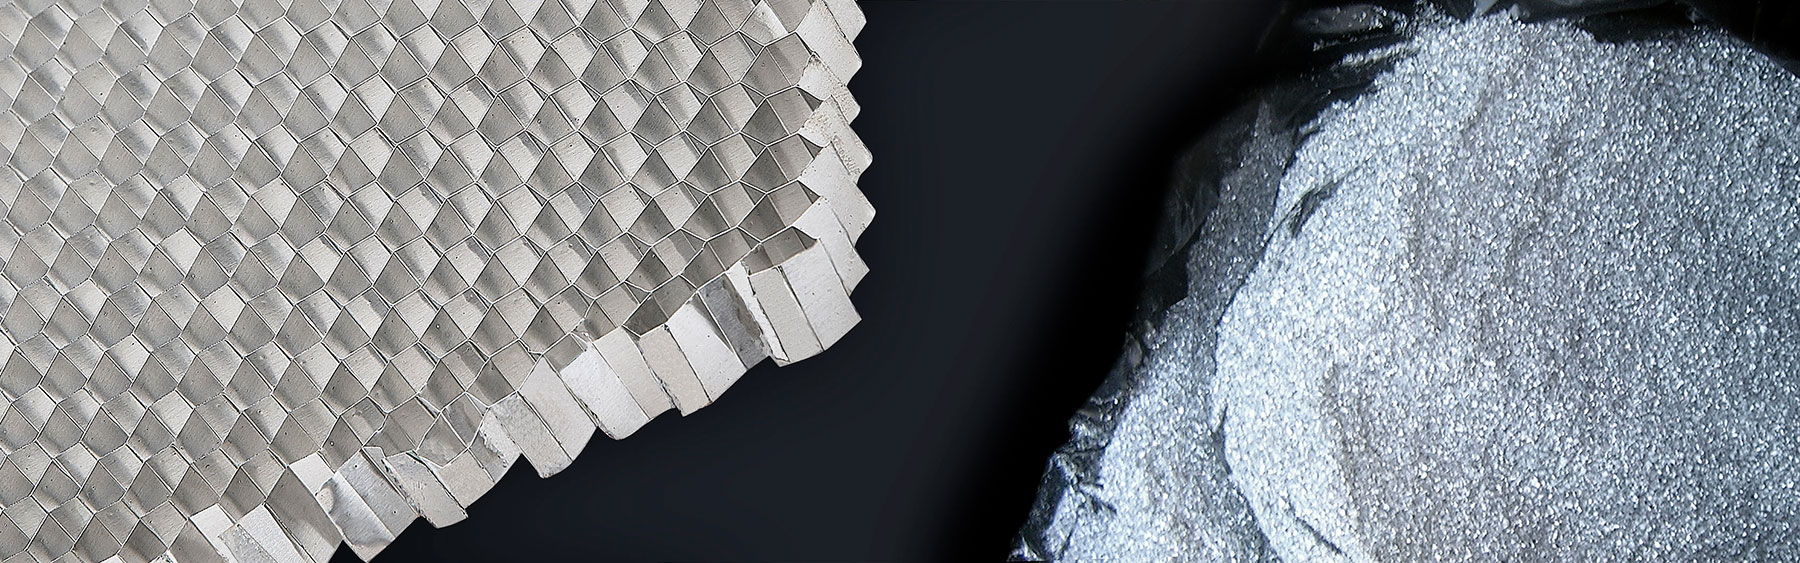 During the production of aluminium honeycomb and sandwich panels we produce high quality aluminium powder